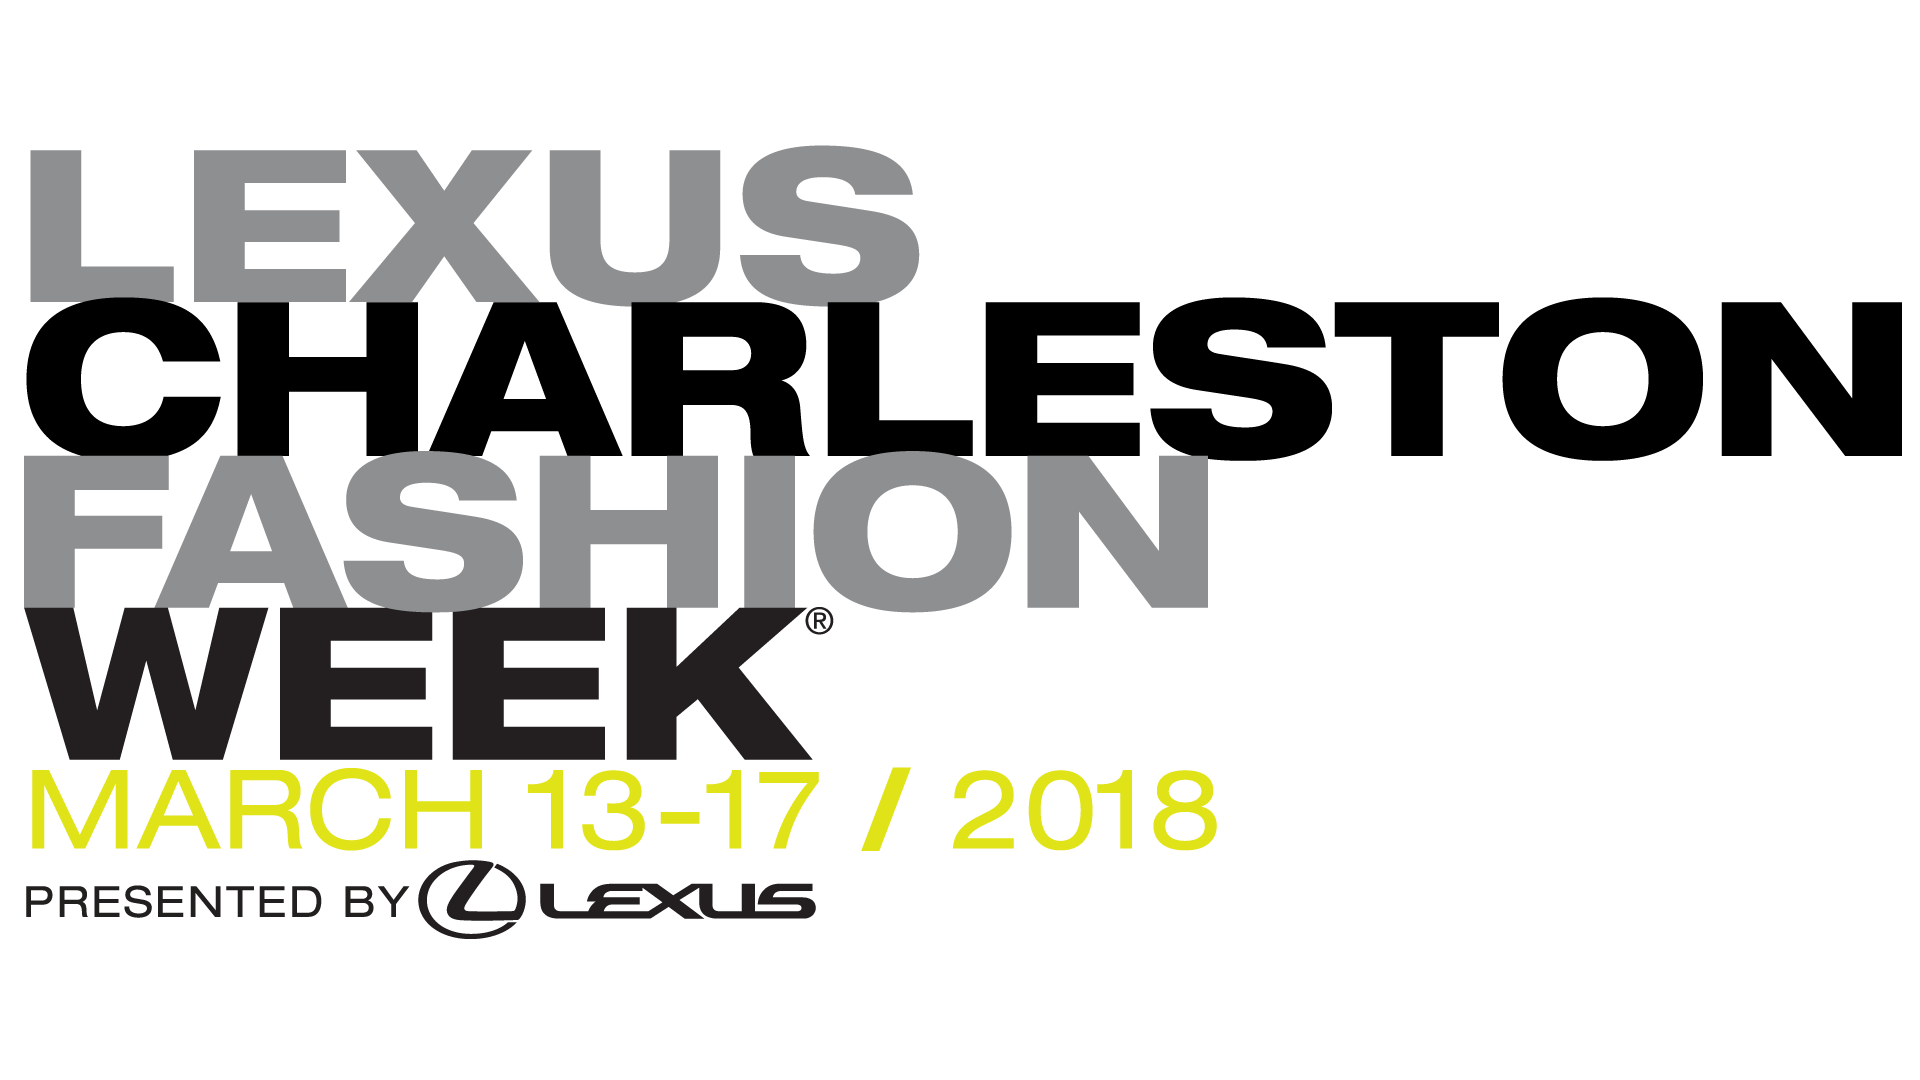 Charleston Fashion Week is March 13-17